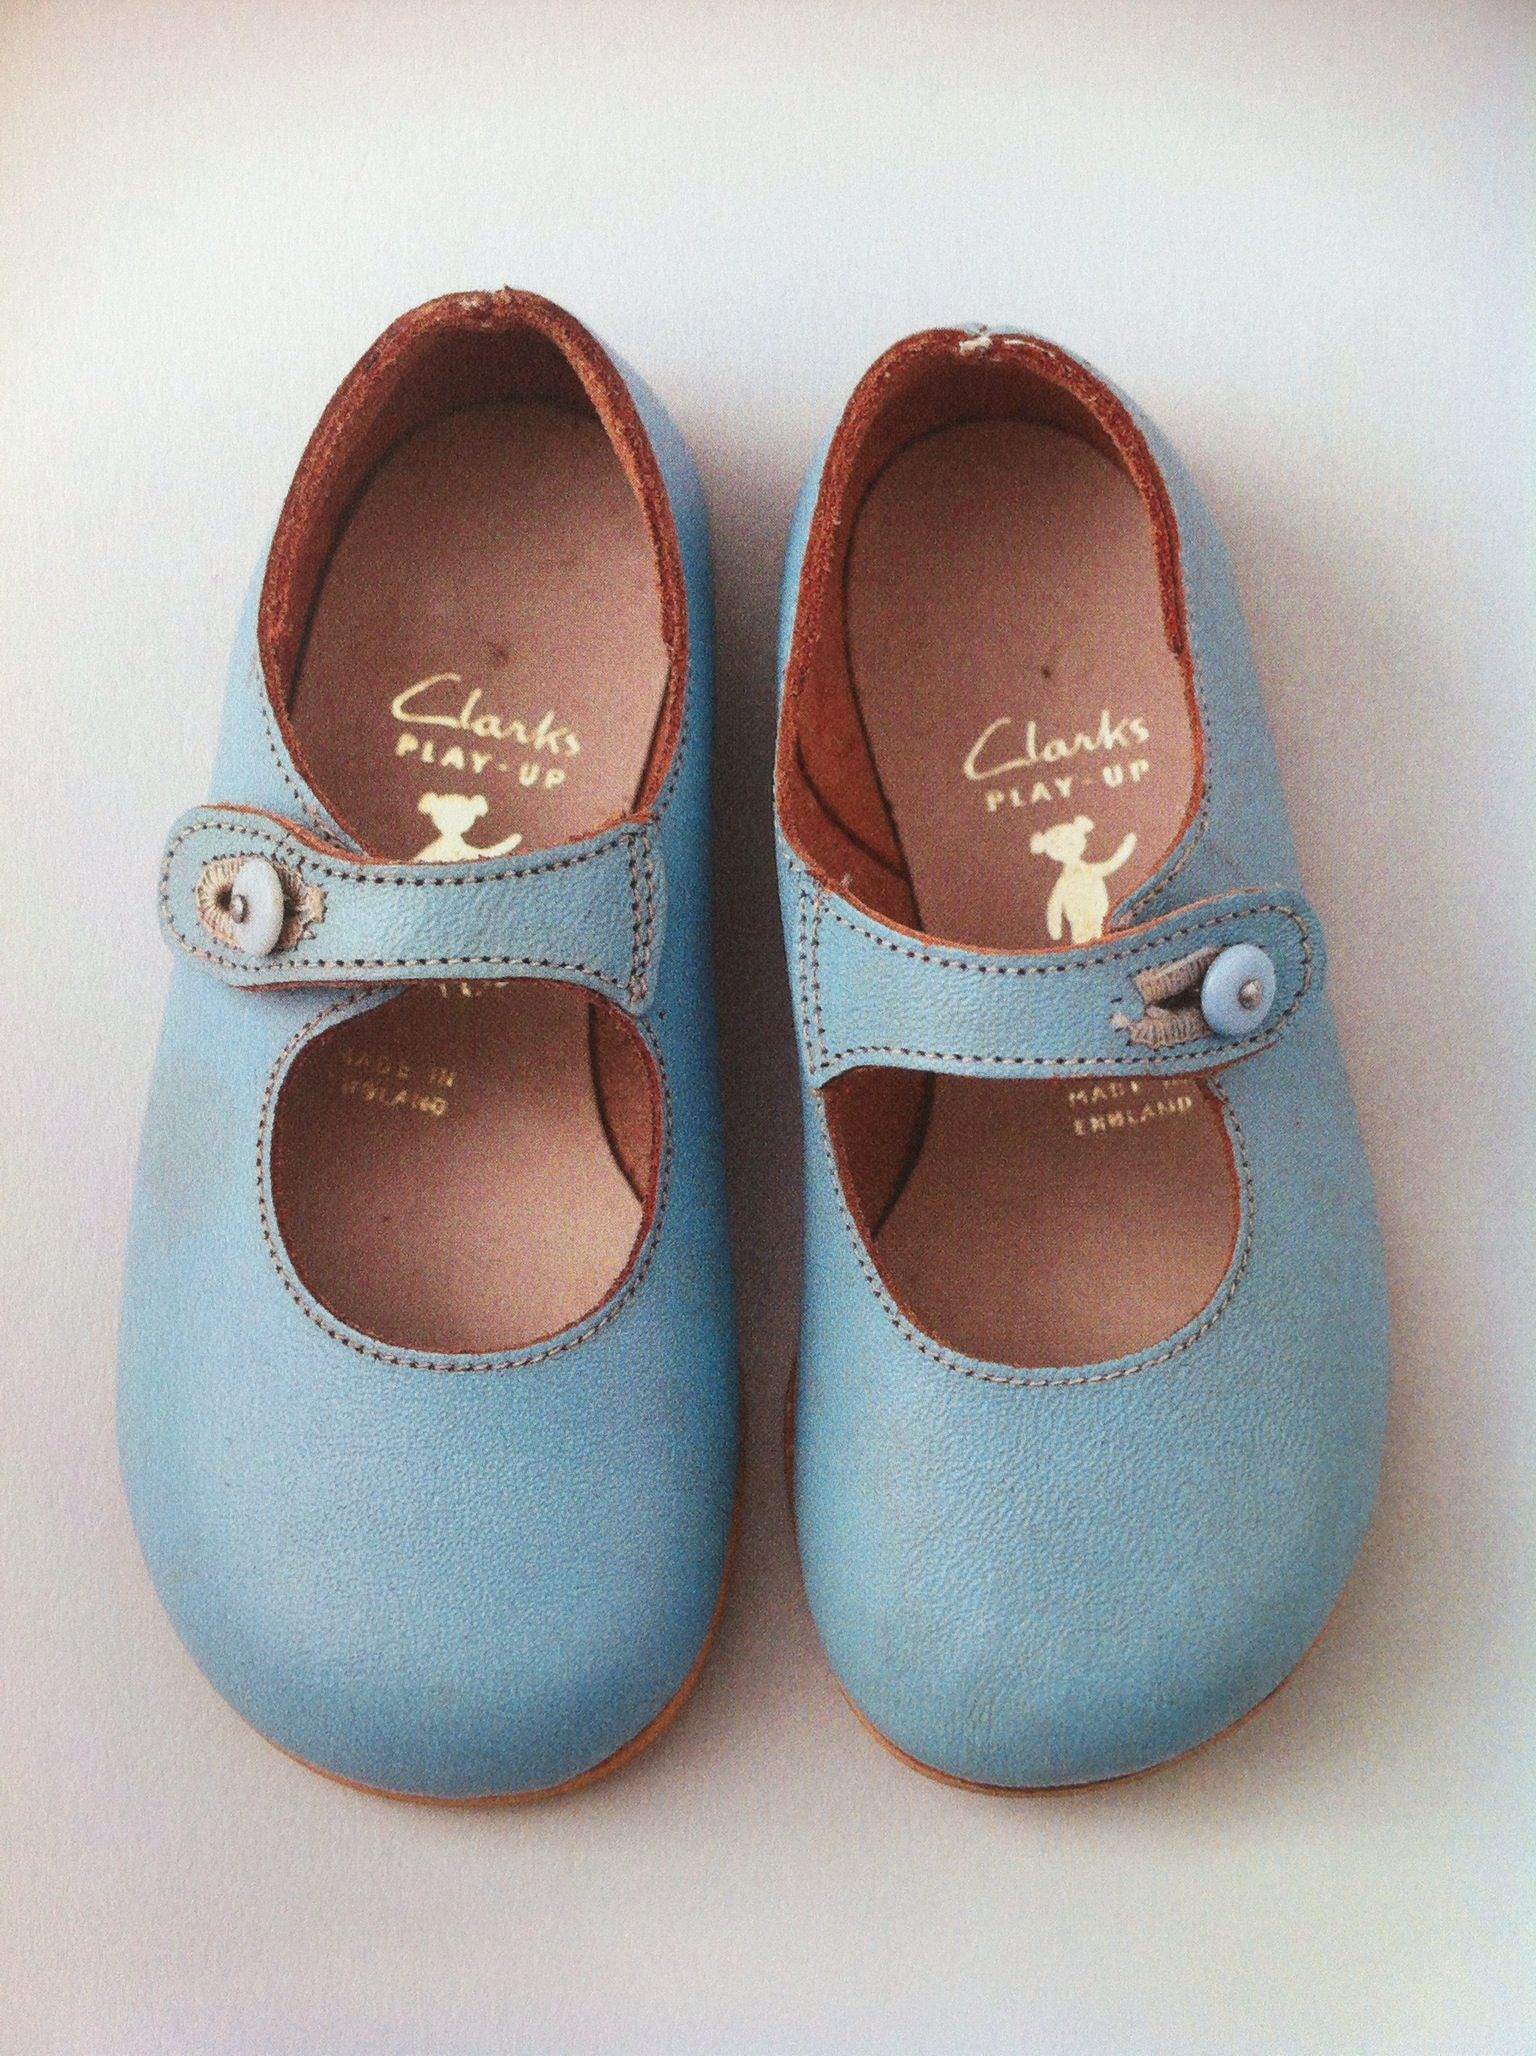 Vintage girls shoes from Clarks Play Ups they should reissue